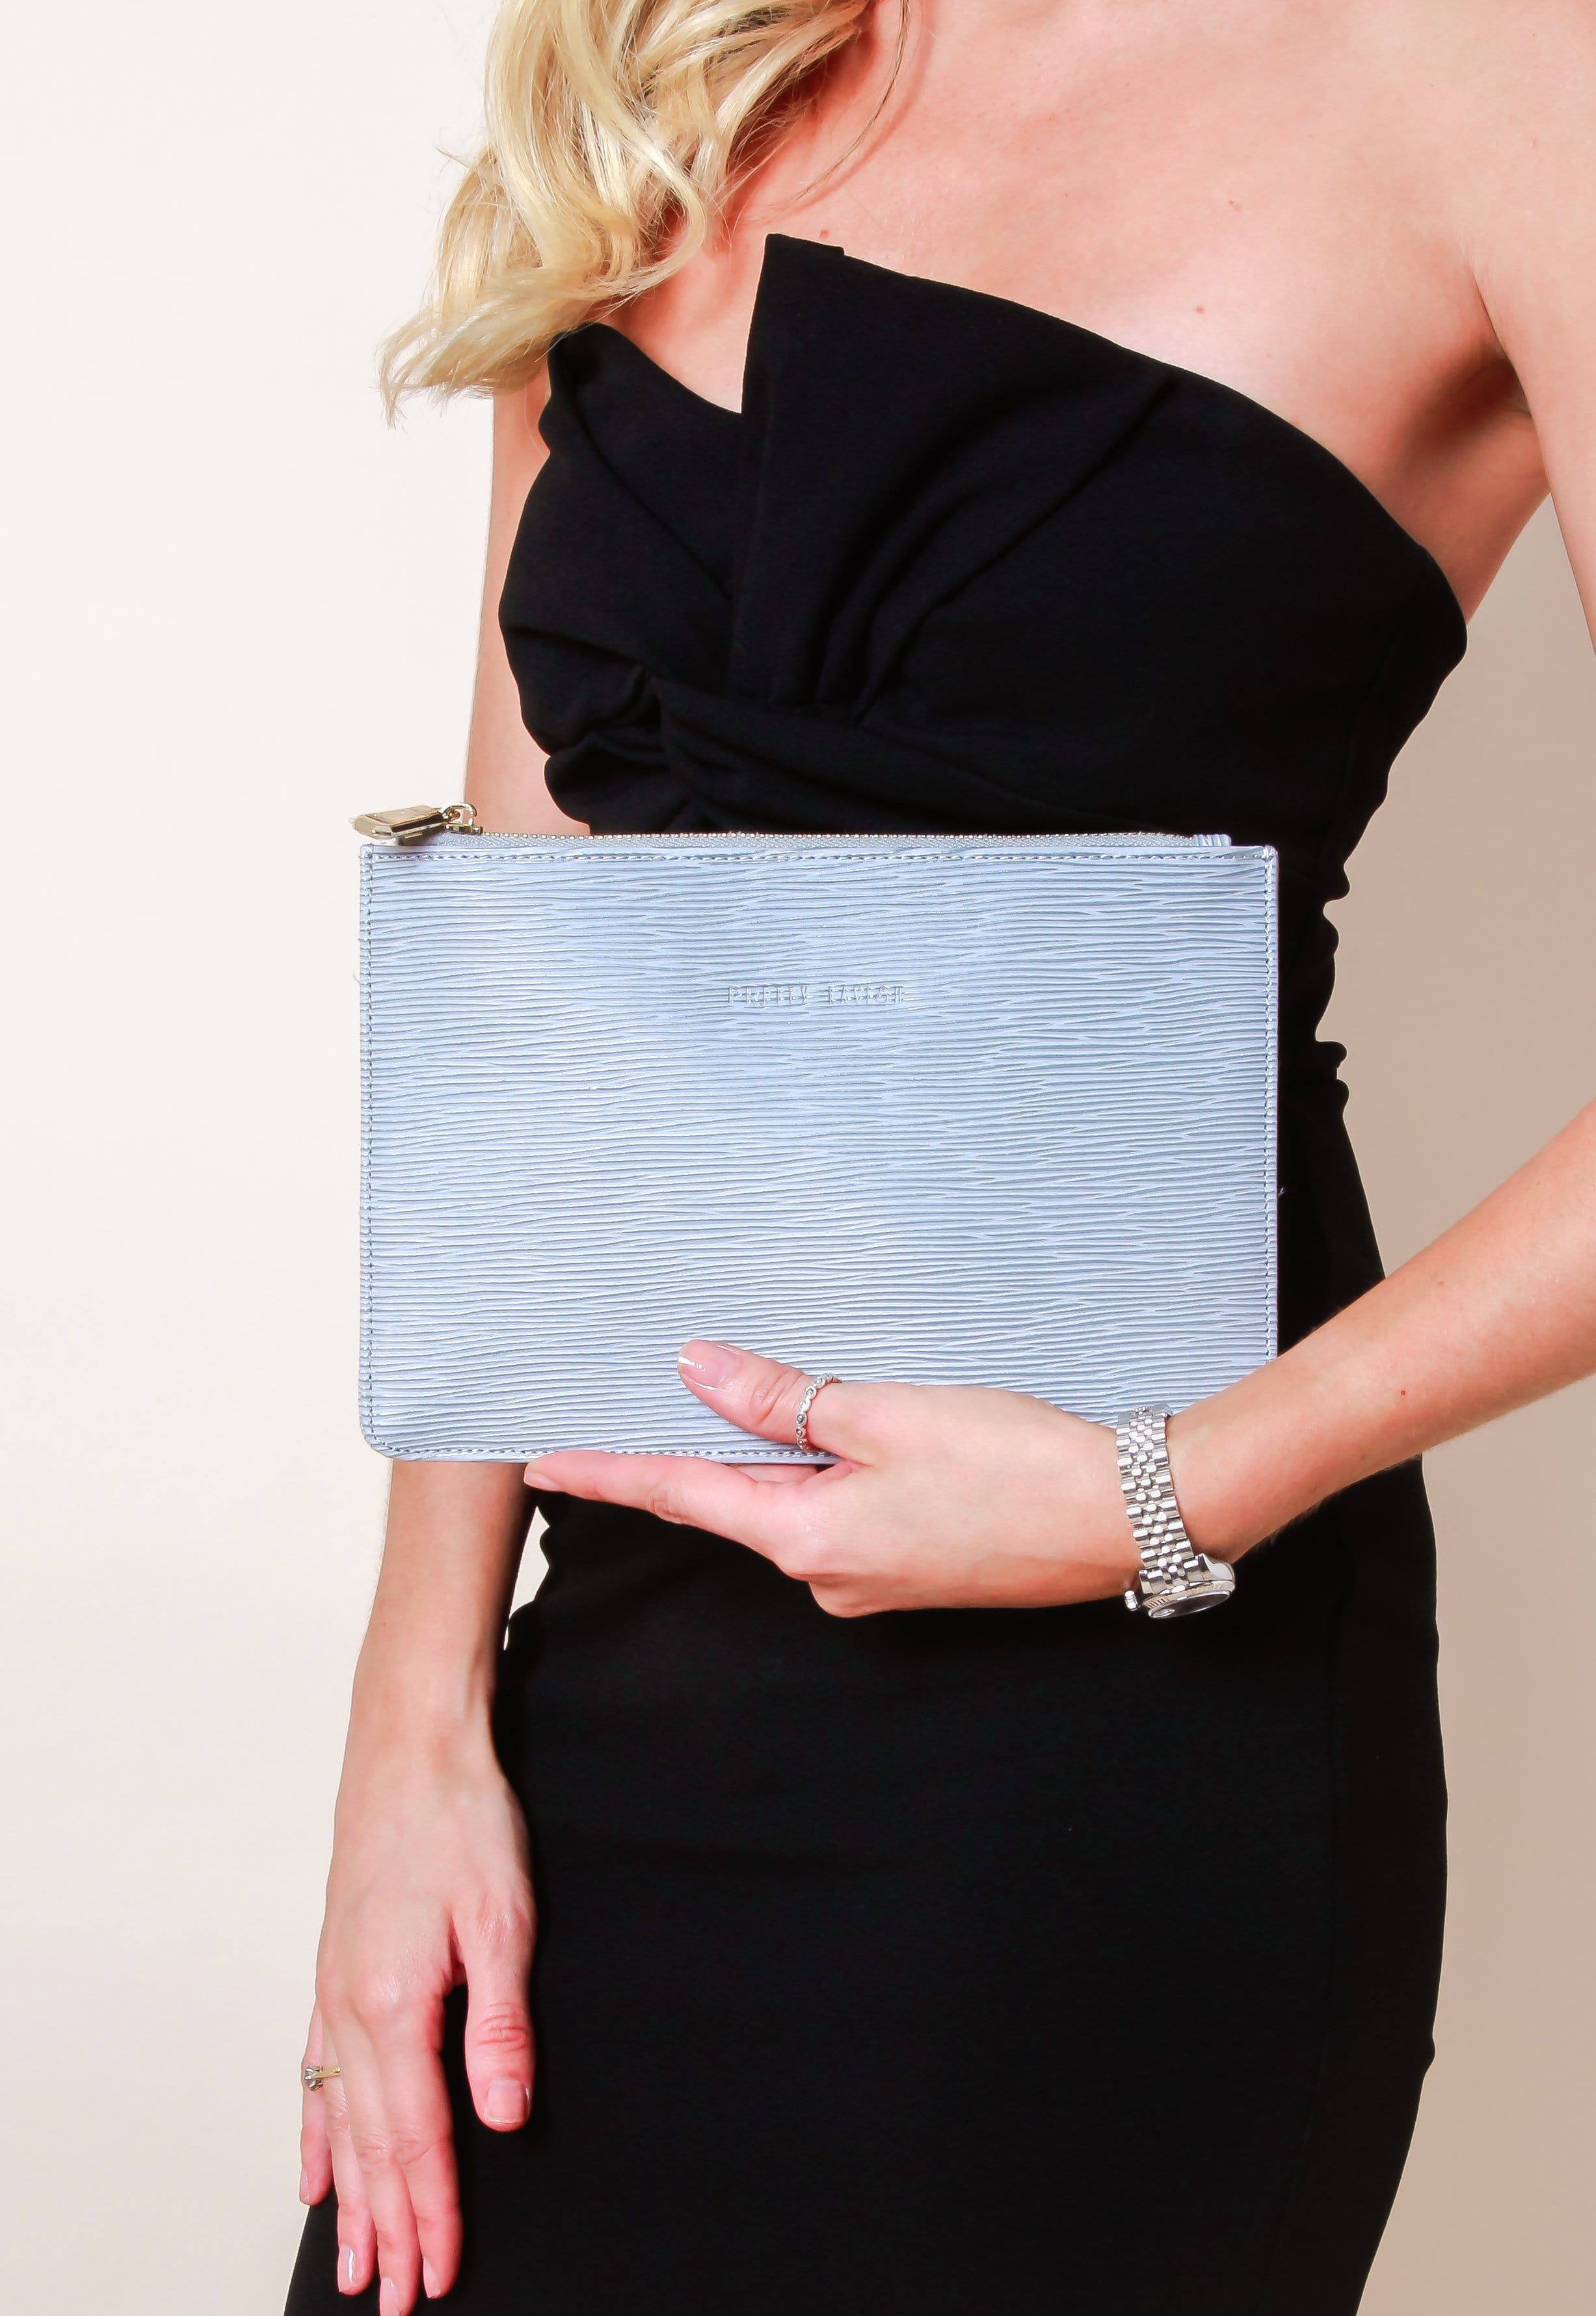 Outlet Small Ribbed Leather Clutch Bag - Grey, Bags - Pretty Lavish